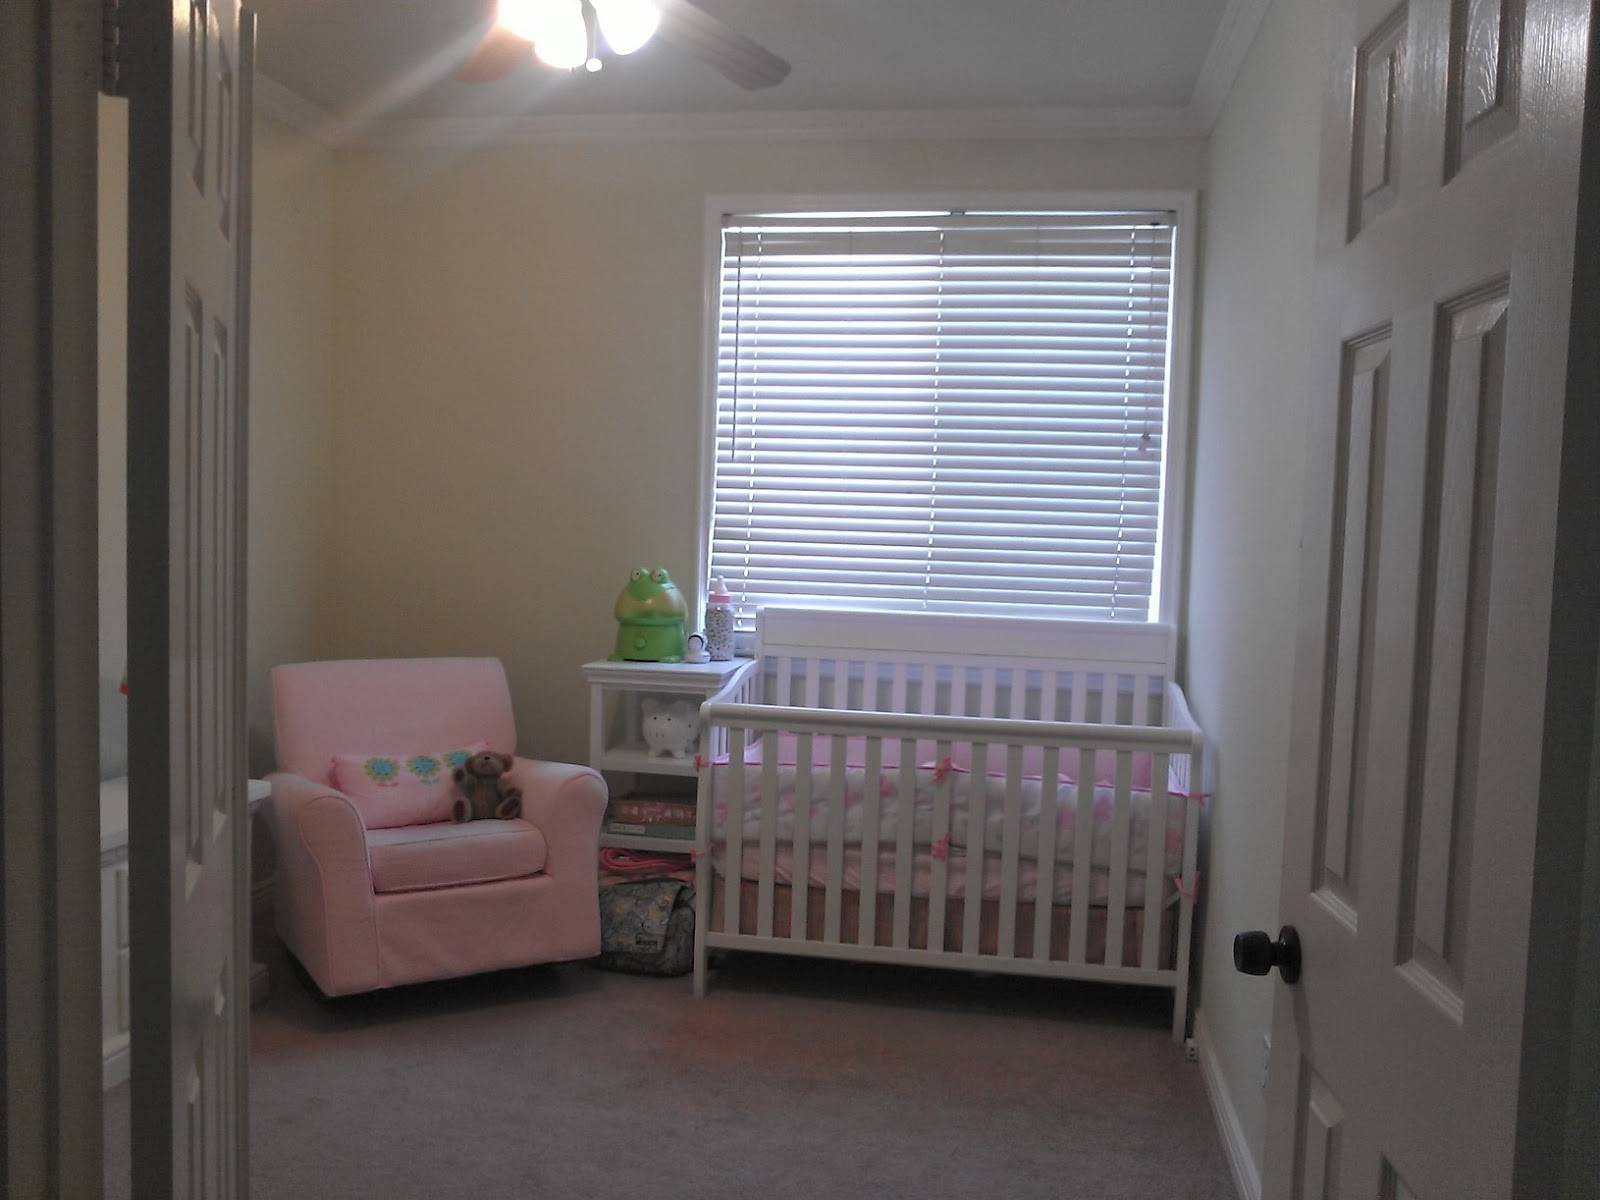 dorel rocking chair used electric wheelchair the copy cat home nursery before and after dresser has been moved to wall where pink sat was a very pale light green with empty walls sad window